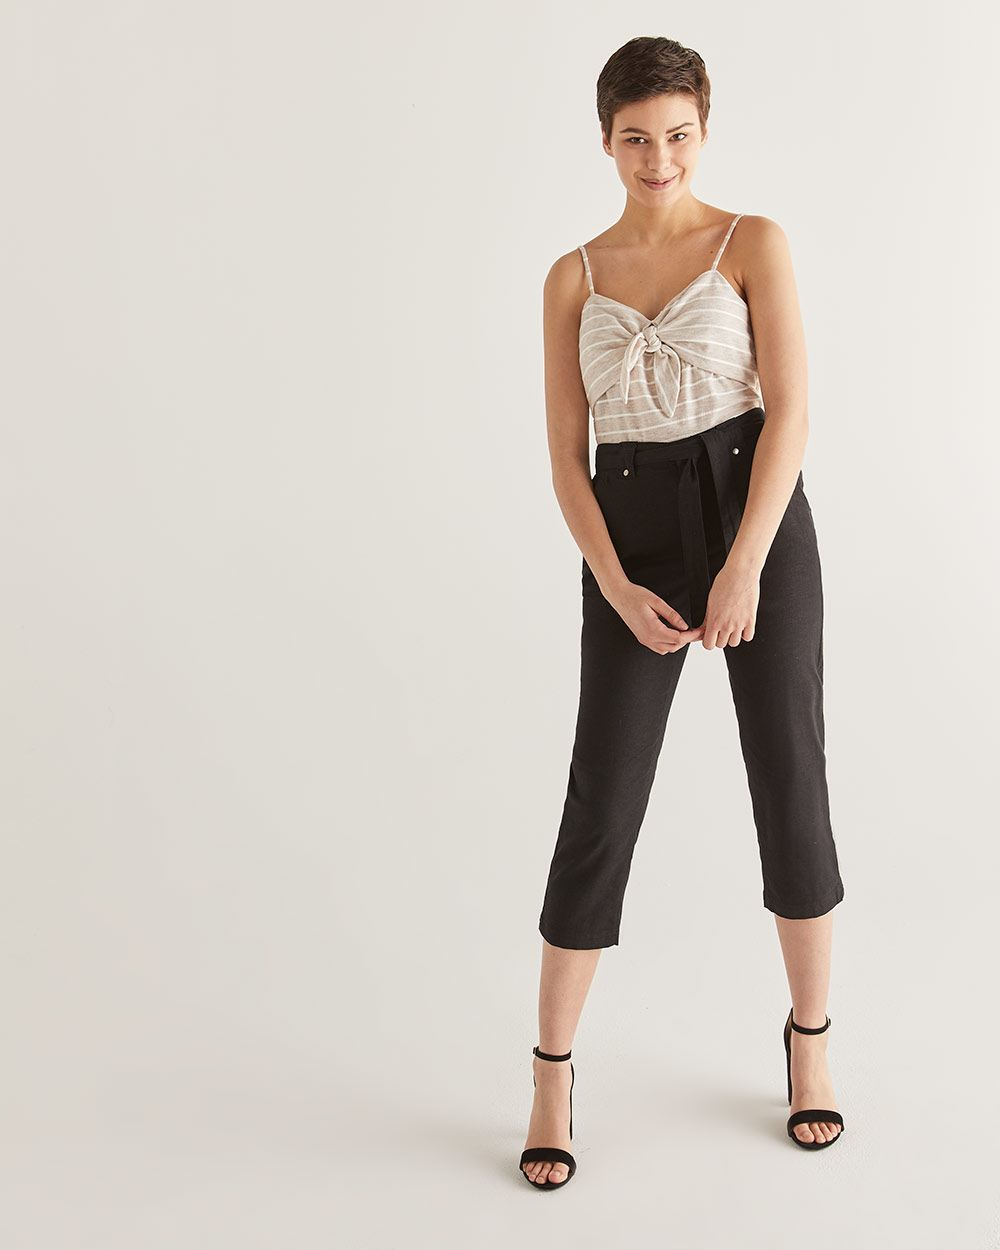 Linen-Blend Cropped Pants with Sash - Petite